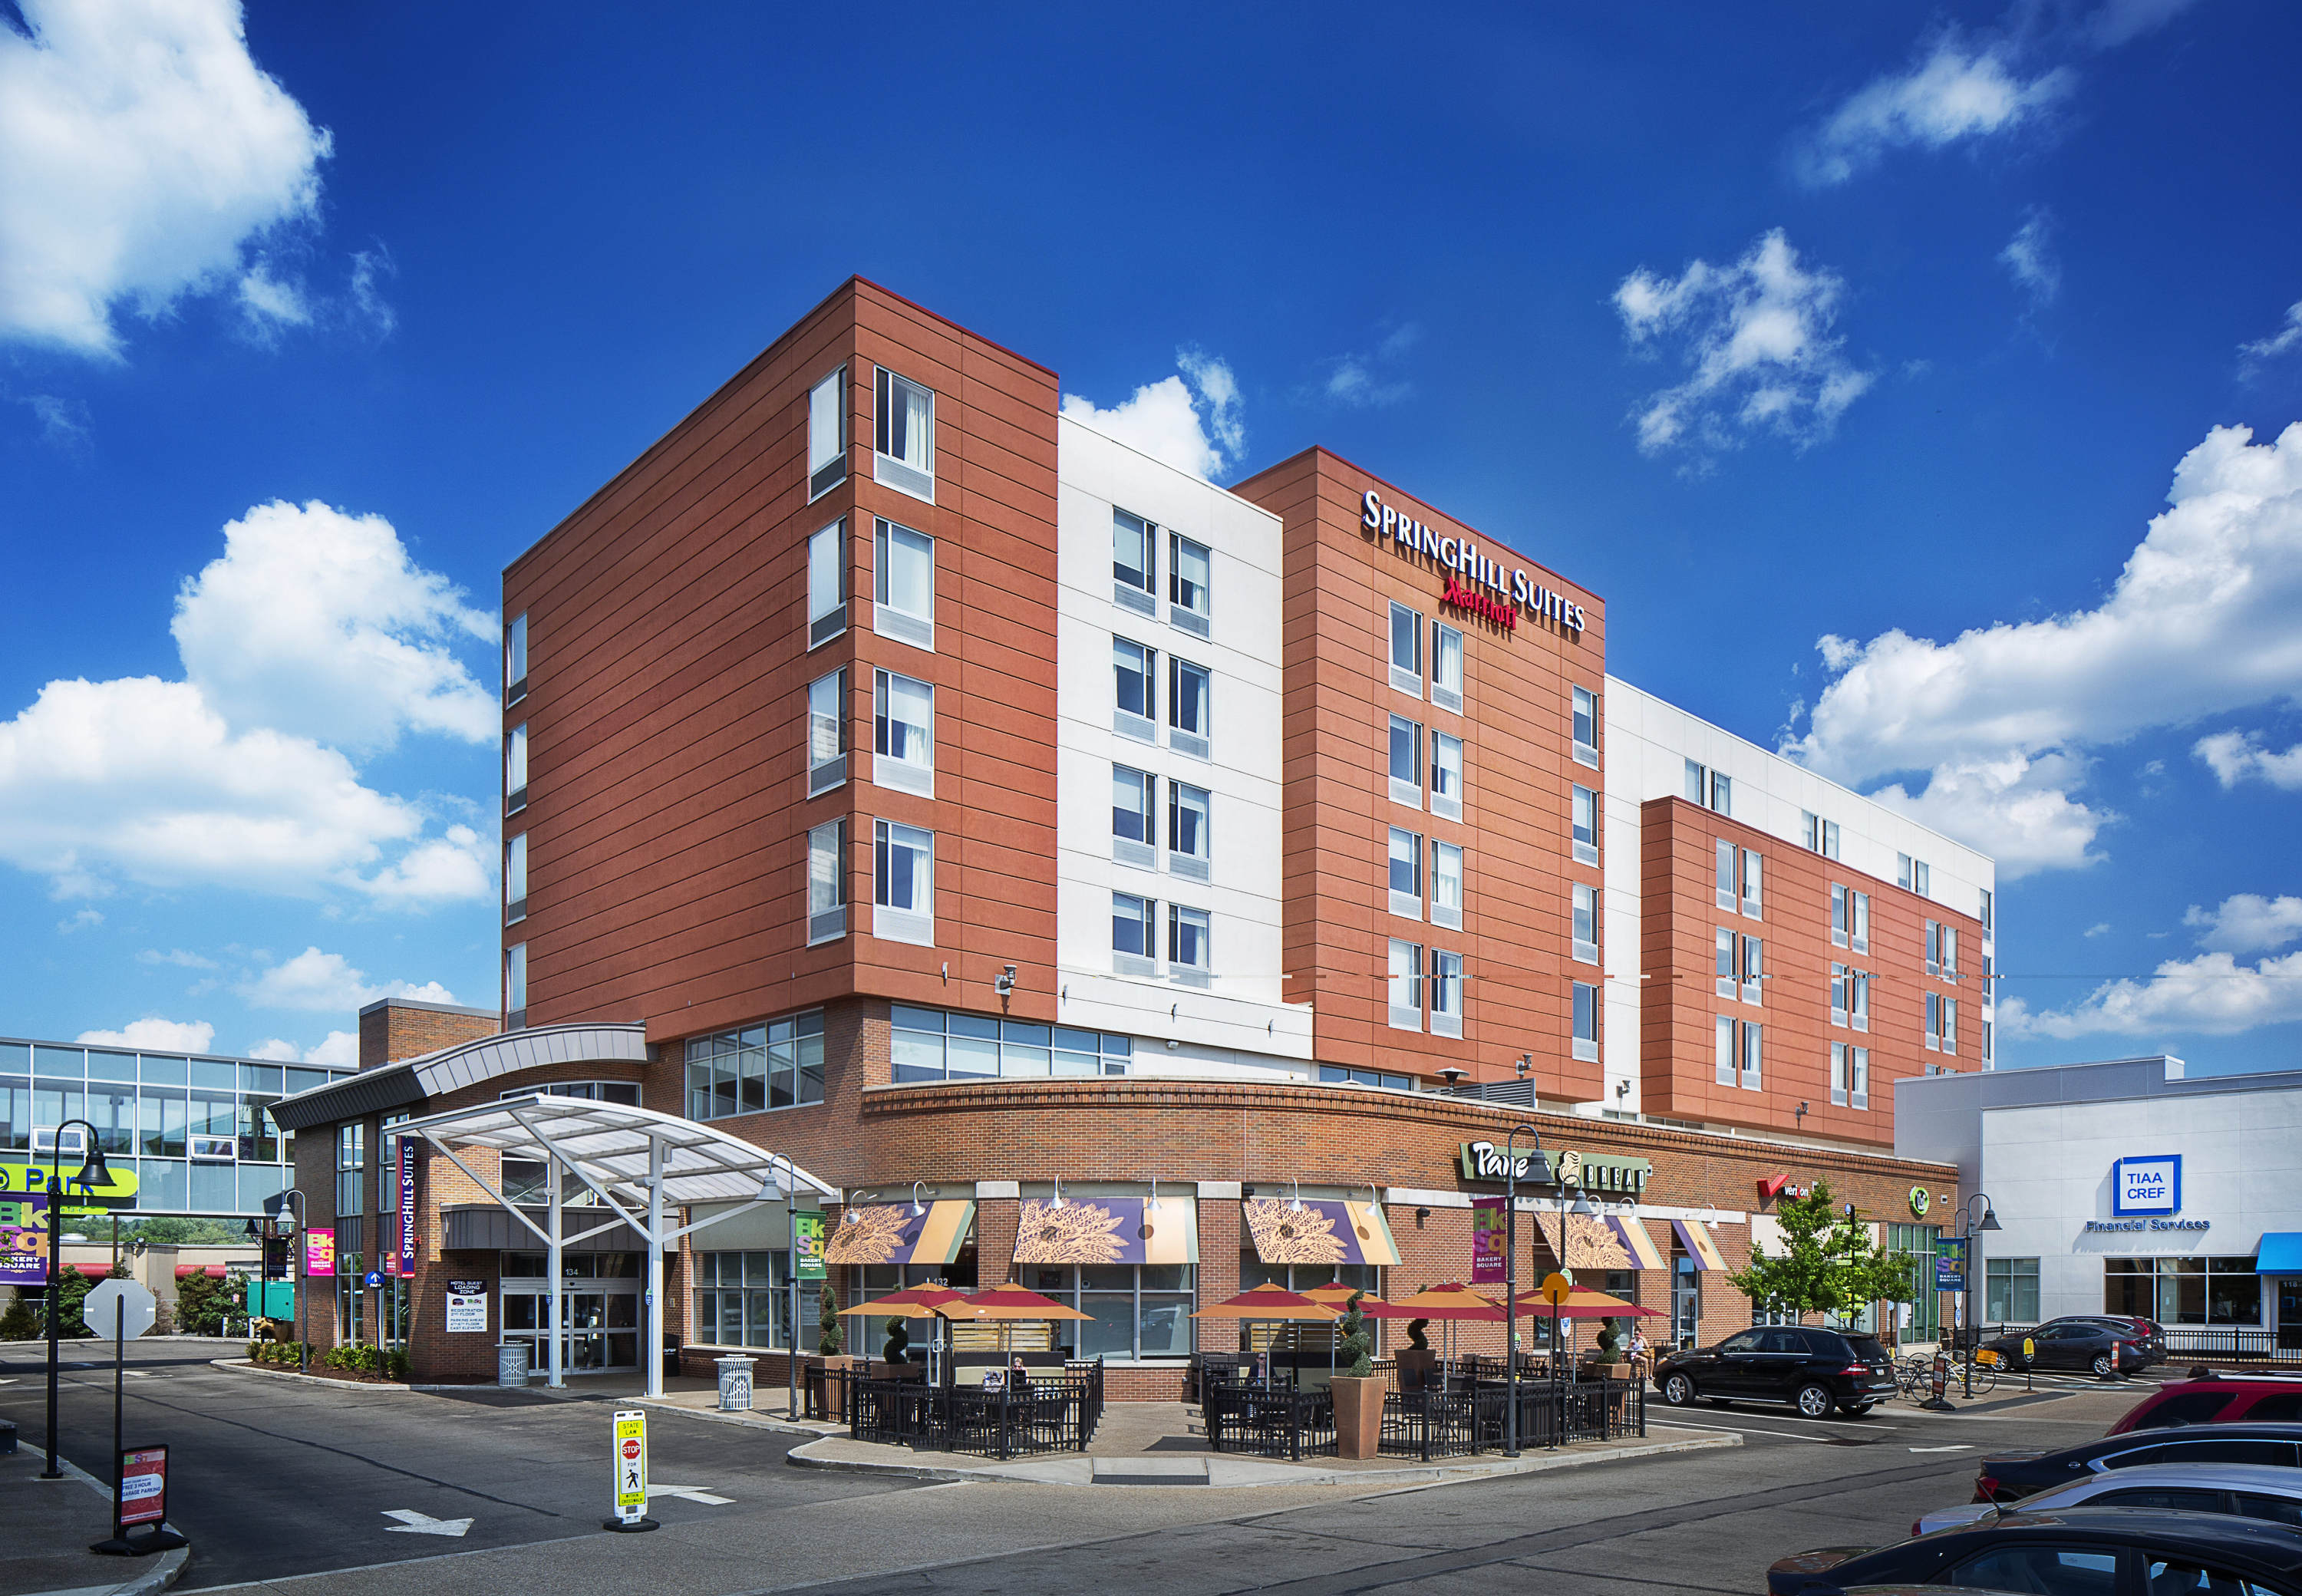 SpringHill Suites by Marriott Pittsburgh Bakery Square image 0